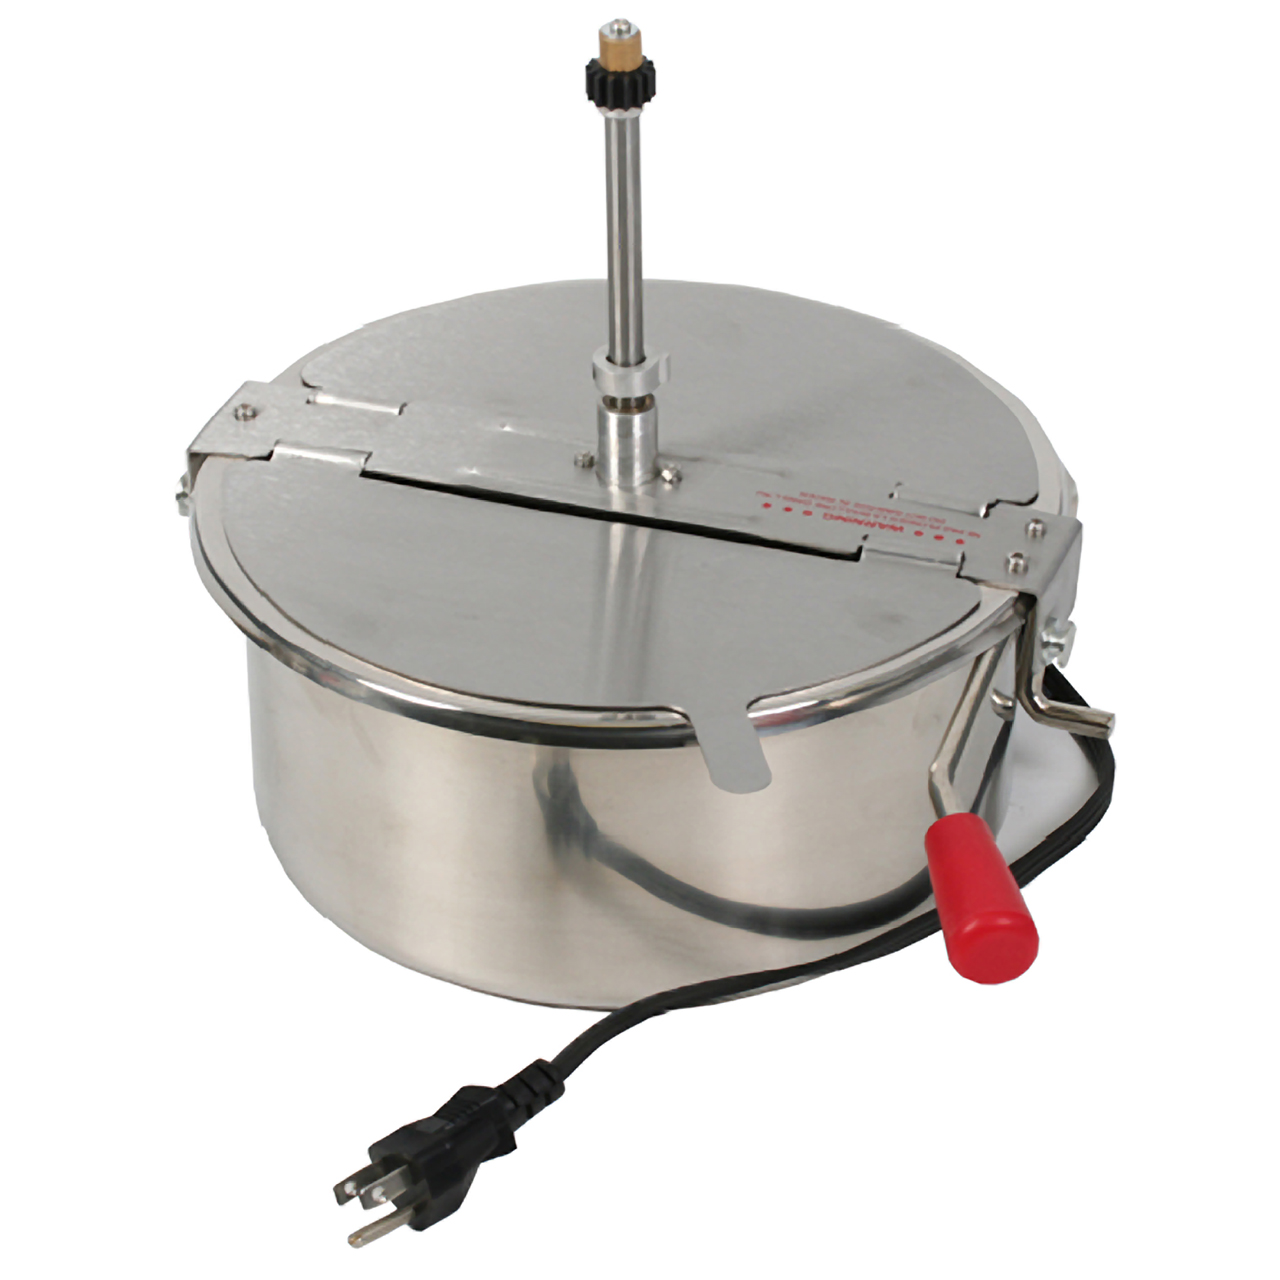 4084 nf popstar kettle__1 12 ounce replacement popcorn kettle for great northern popcorn  at edmiracle.co